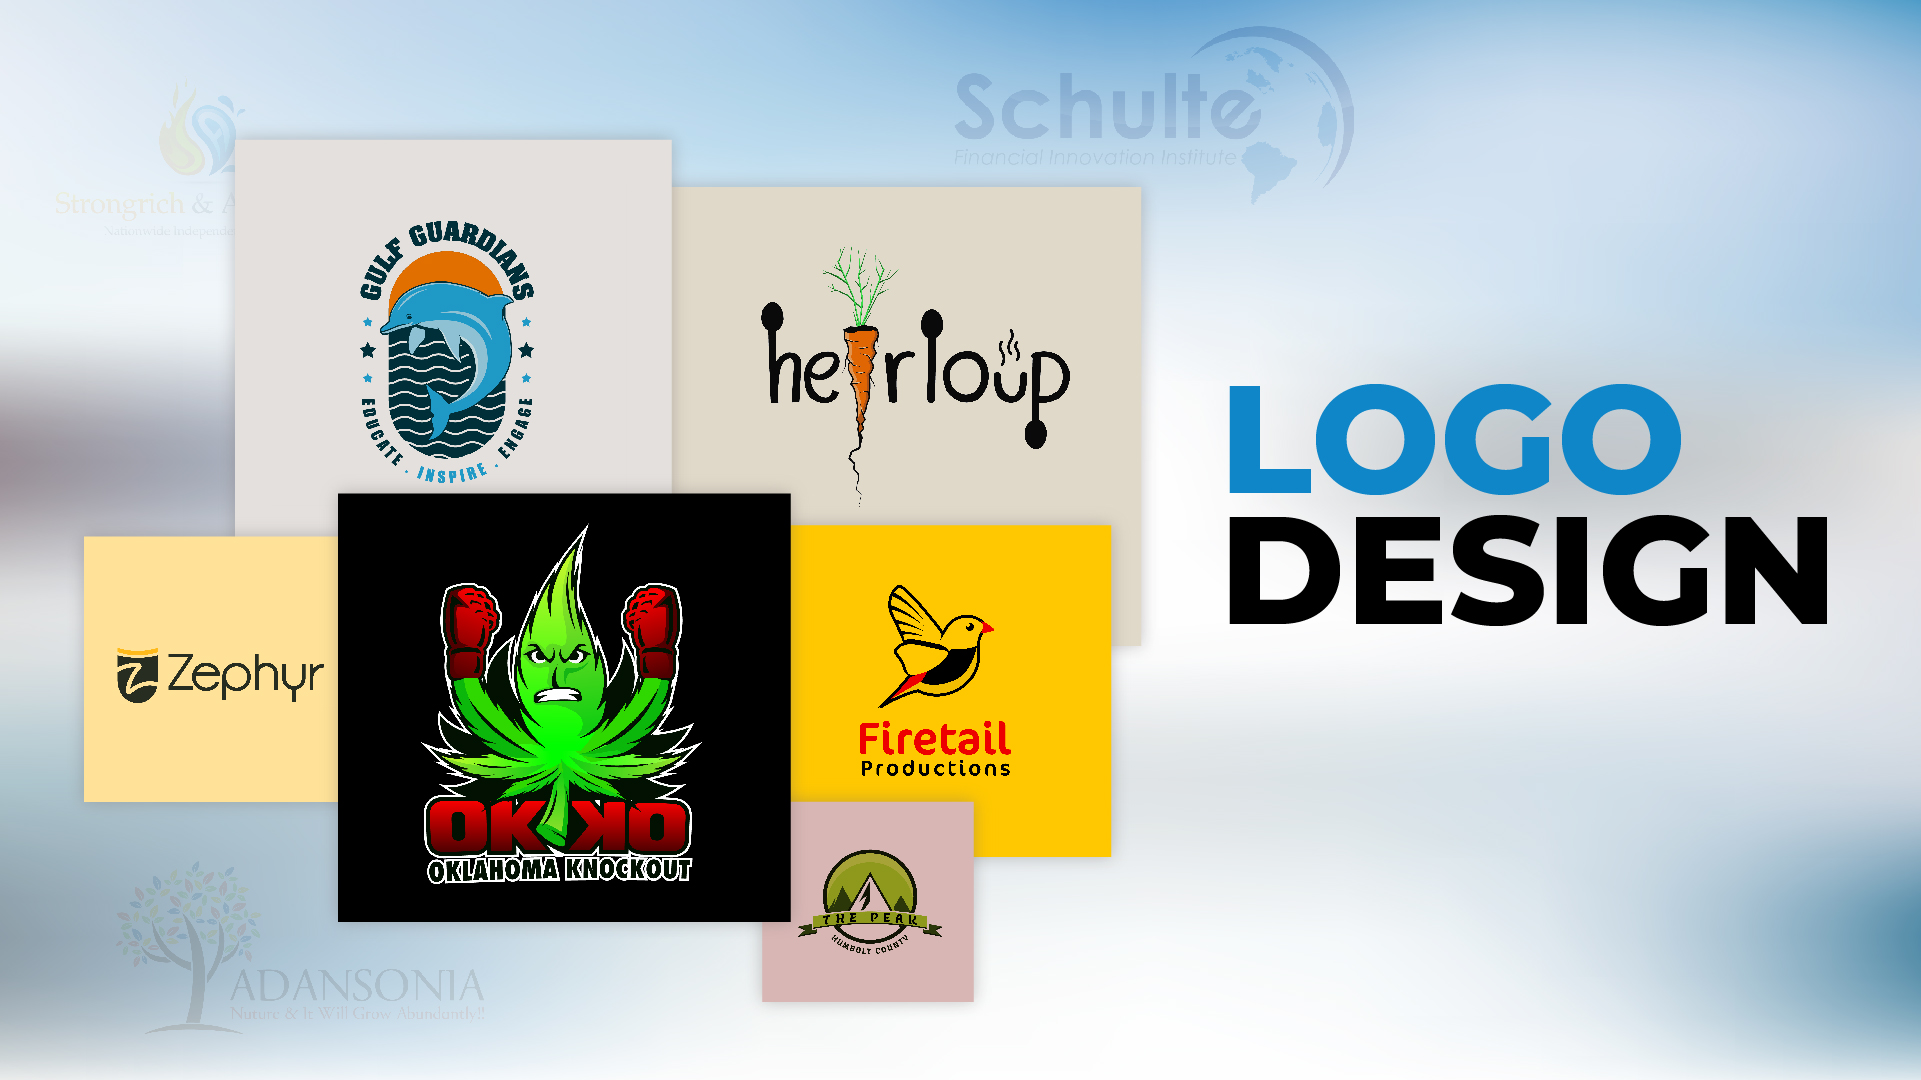 You will get an amazing logo design for your business